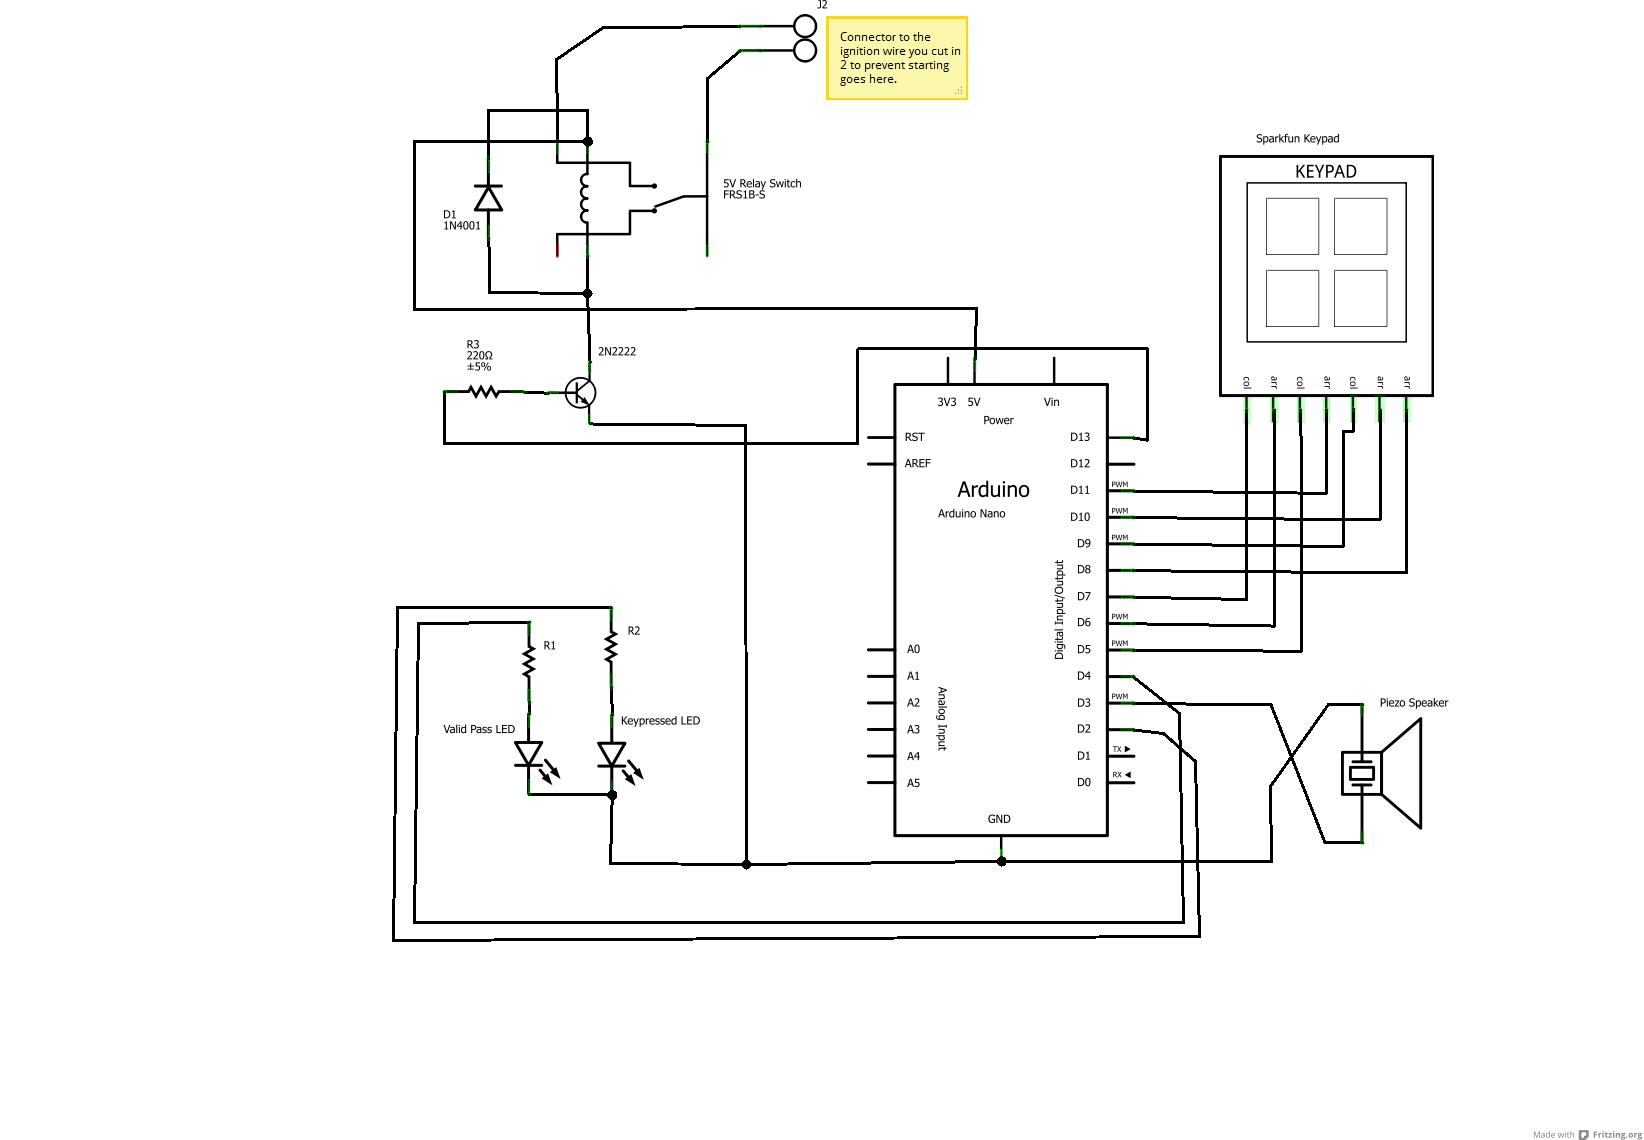 bluetooth headset circuit diagram  u2013 powerking co